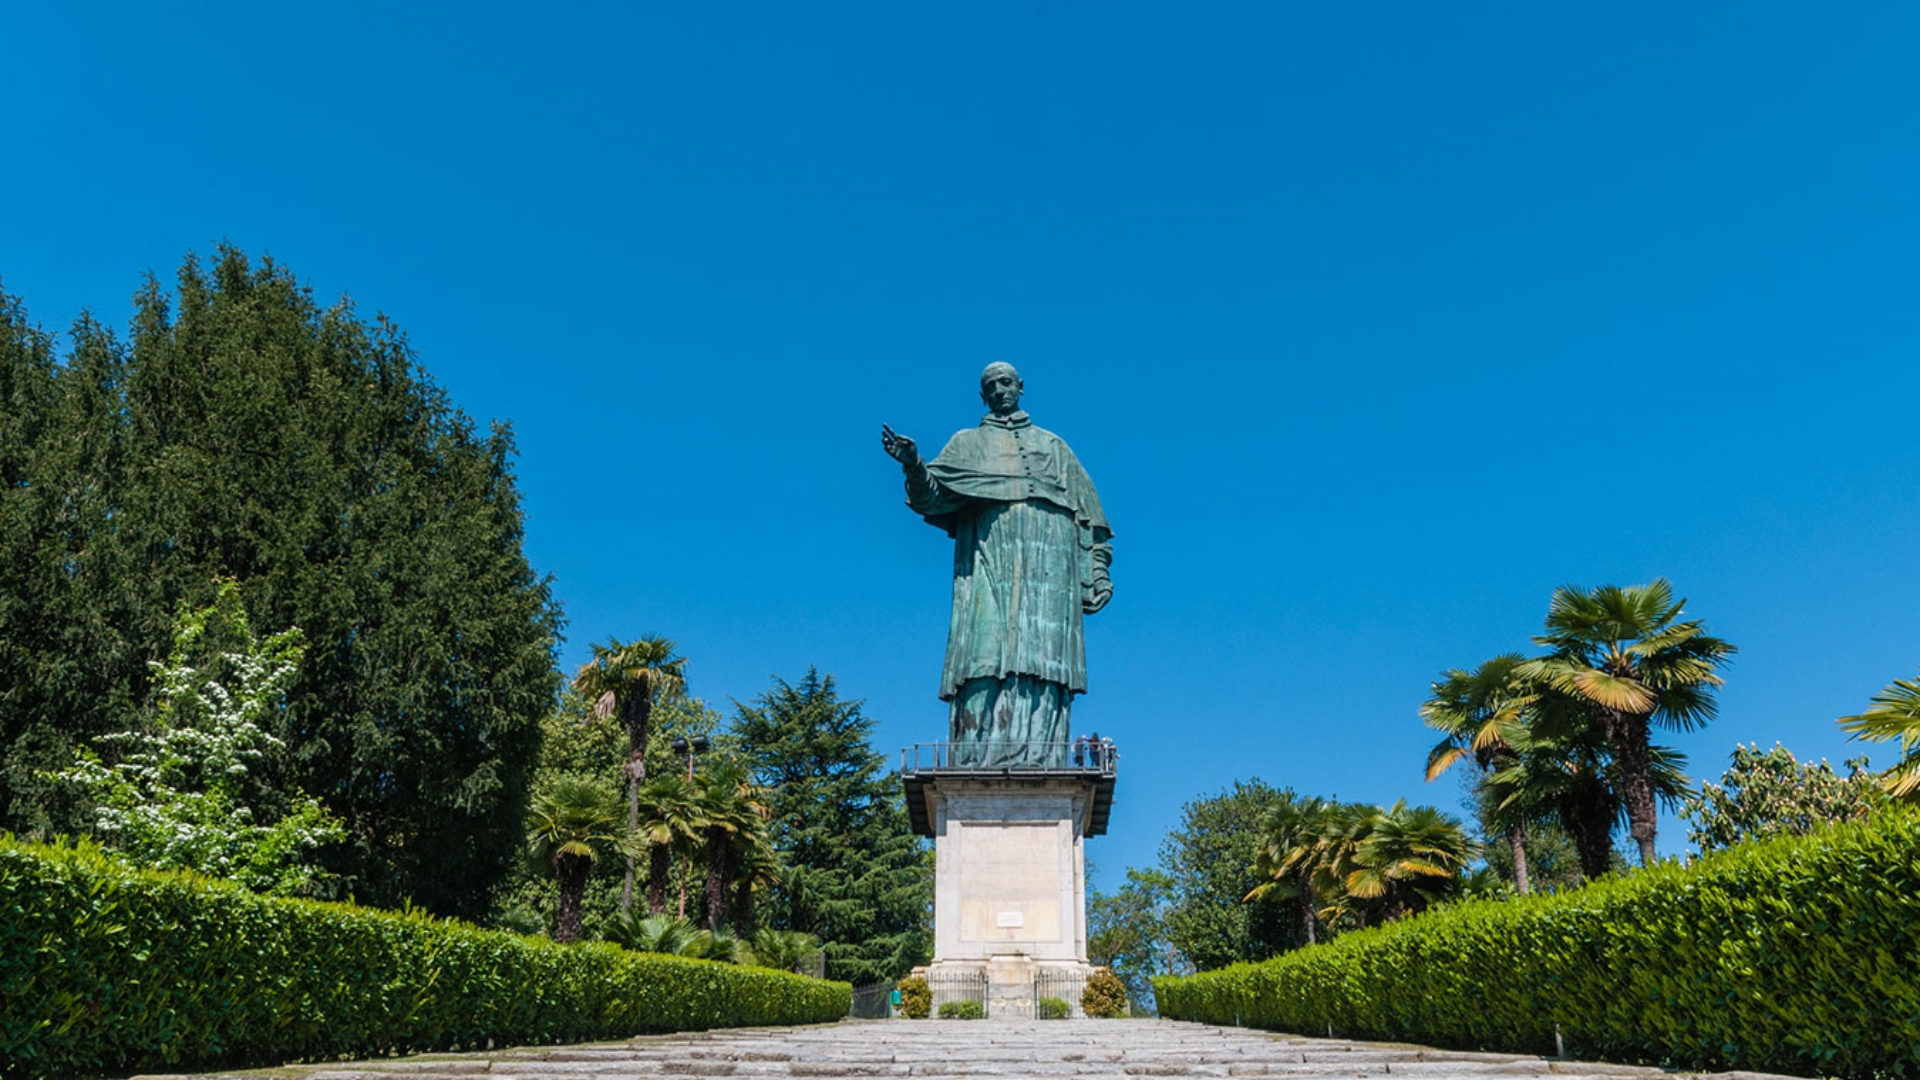 THE STATUE OF SAINT CHARLES IN ARONA REOPENS